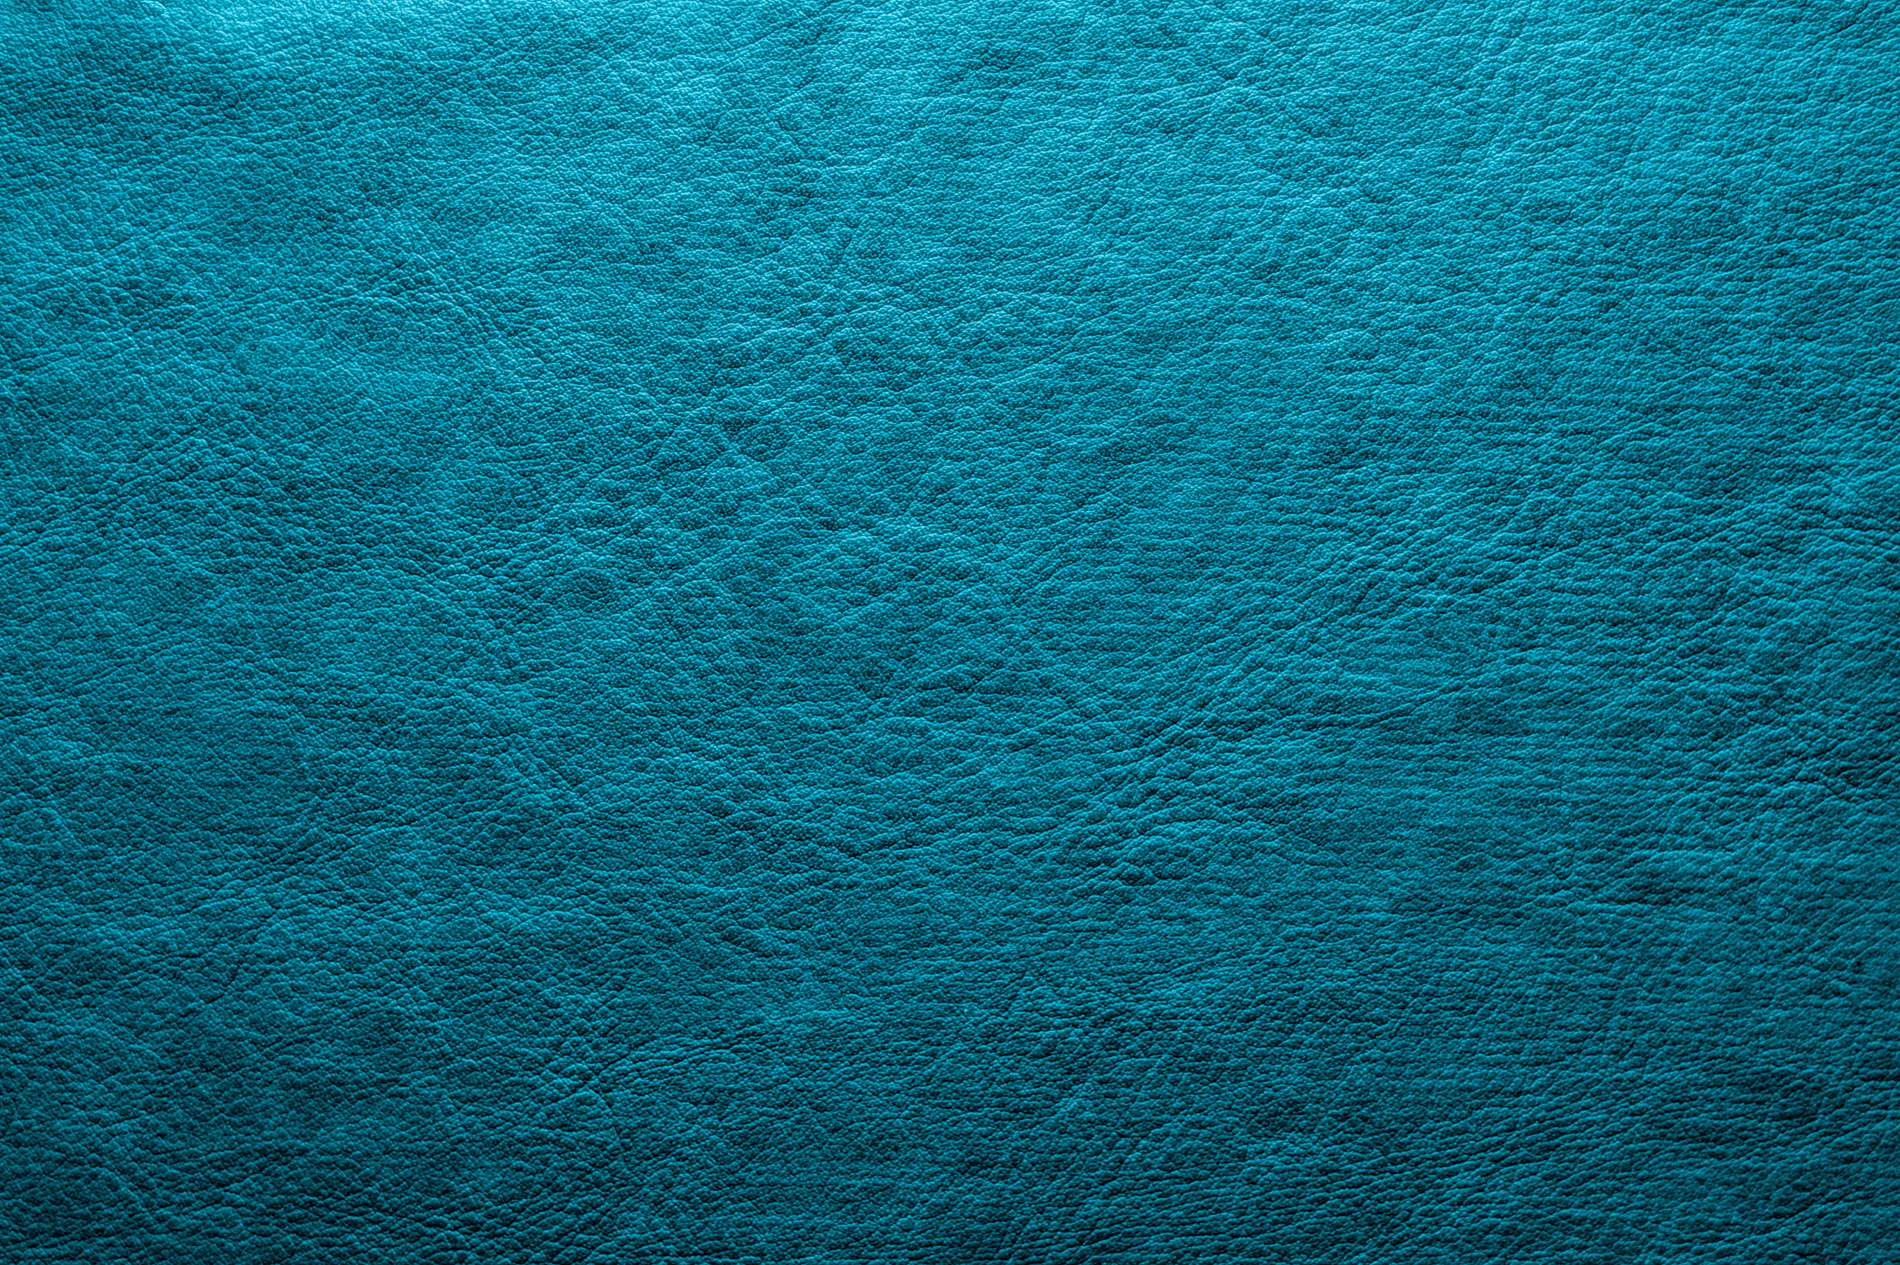 Abstract aqua blue leather background photohdx for Textures and backgrounds